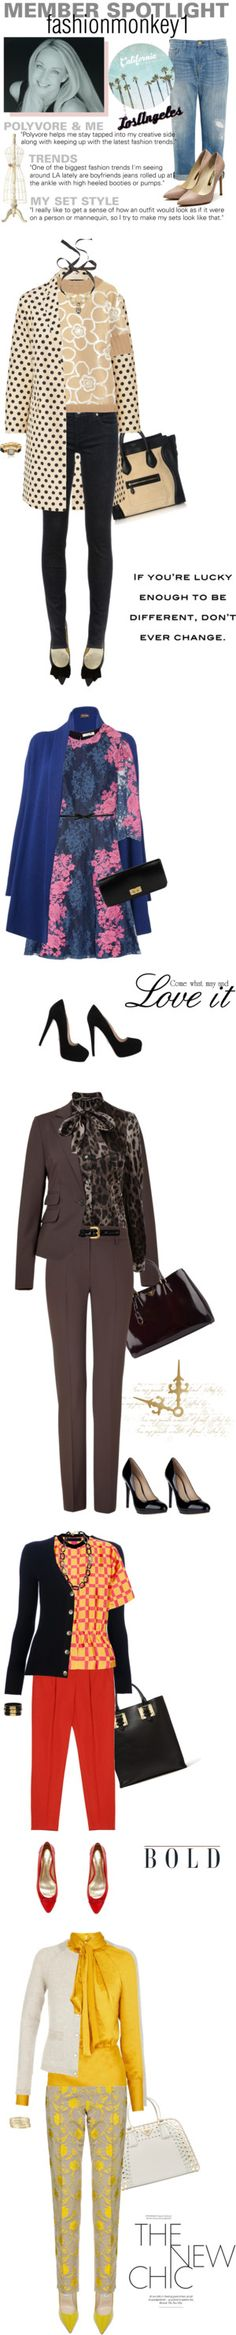 """Member Spotlight: Fashionmonkey1"" by polyvore on Polyvore"